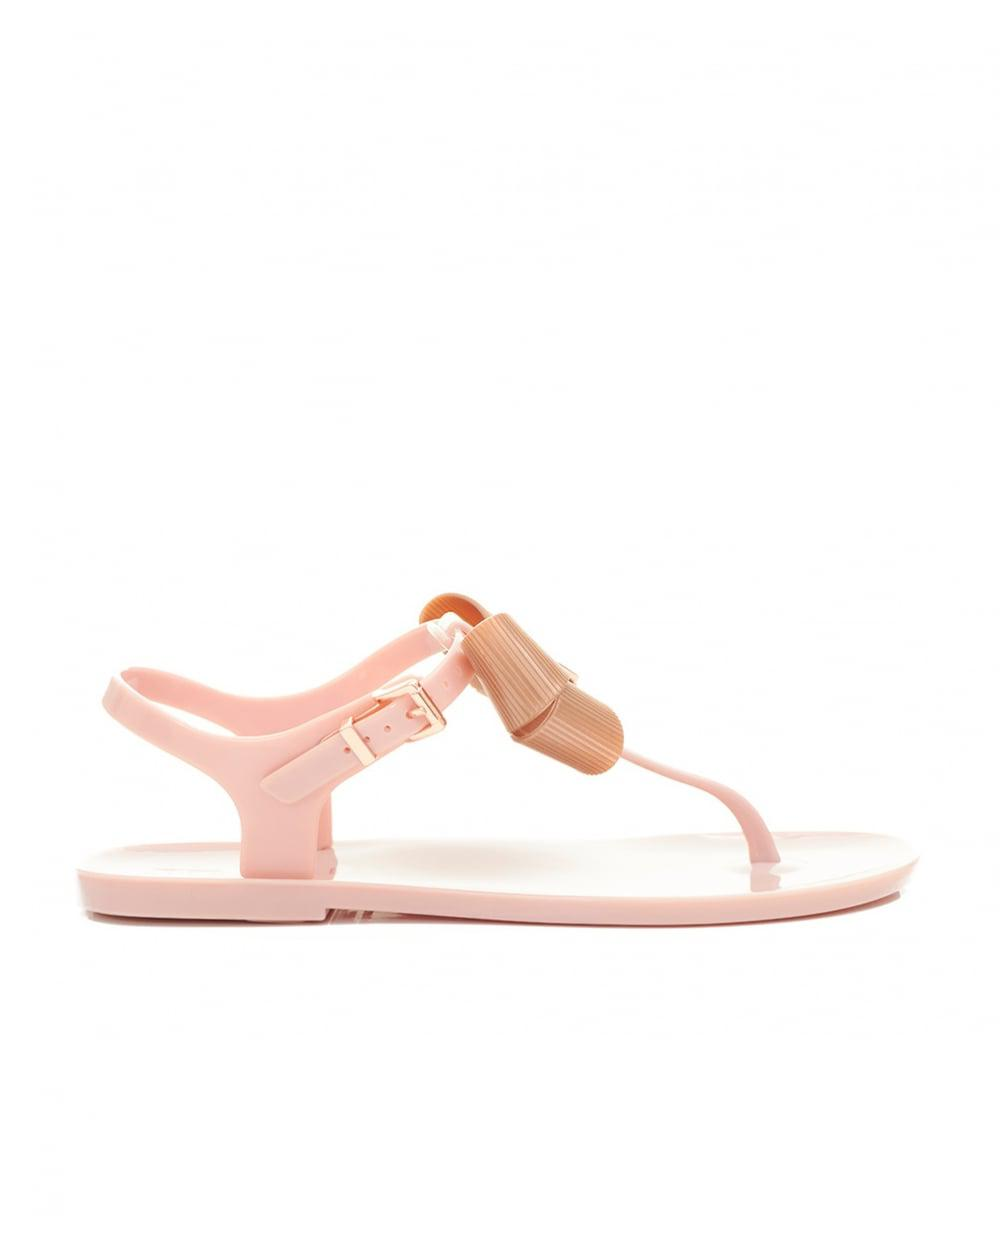 41428835c736 Ted Baker Bow Front T Bar Jelly Sandals in Pink - Lyst